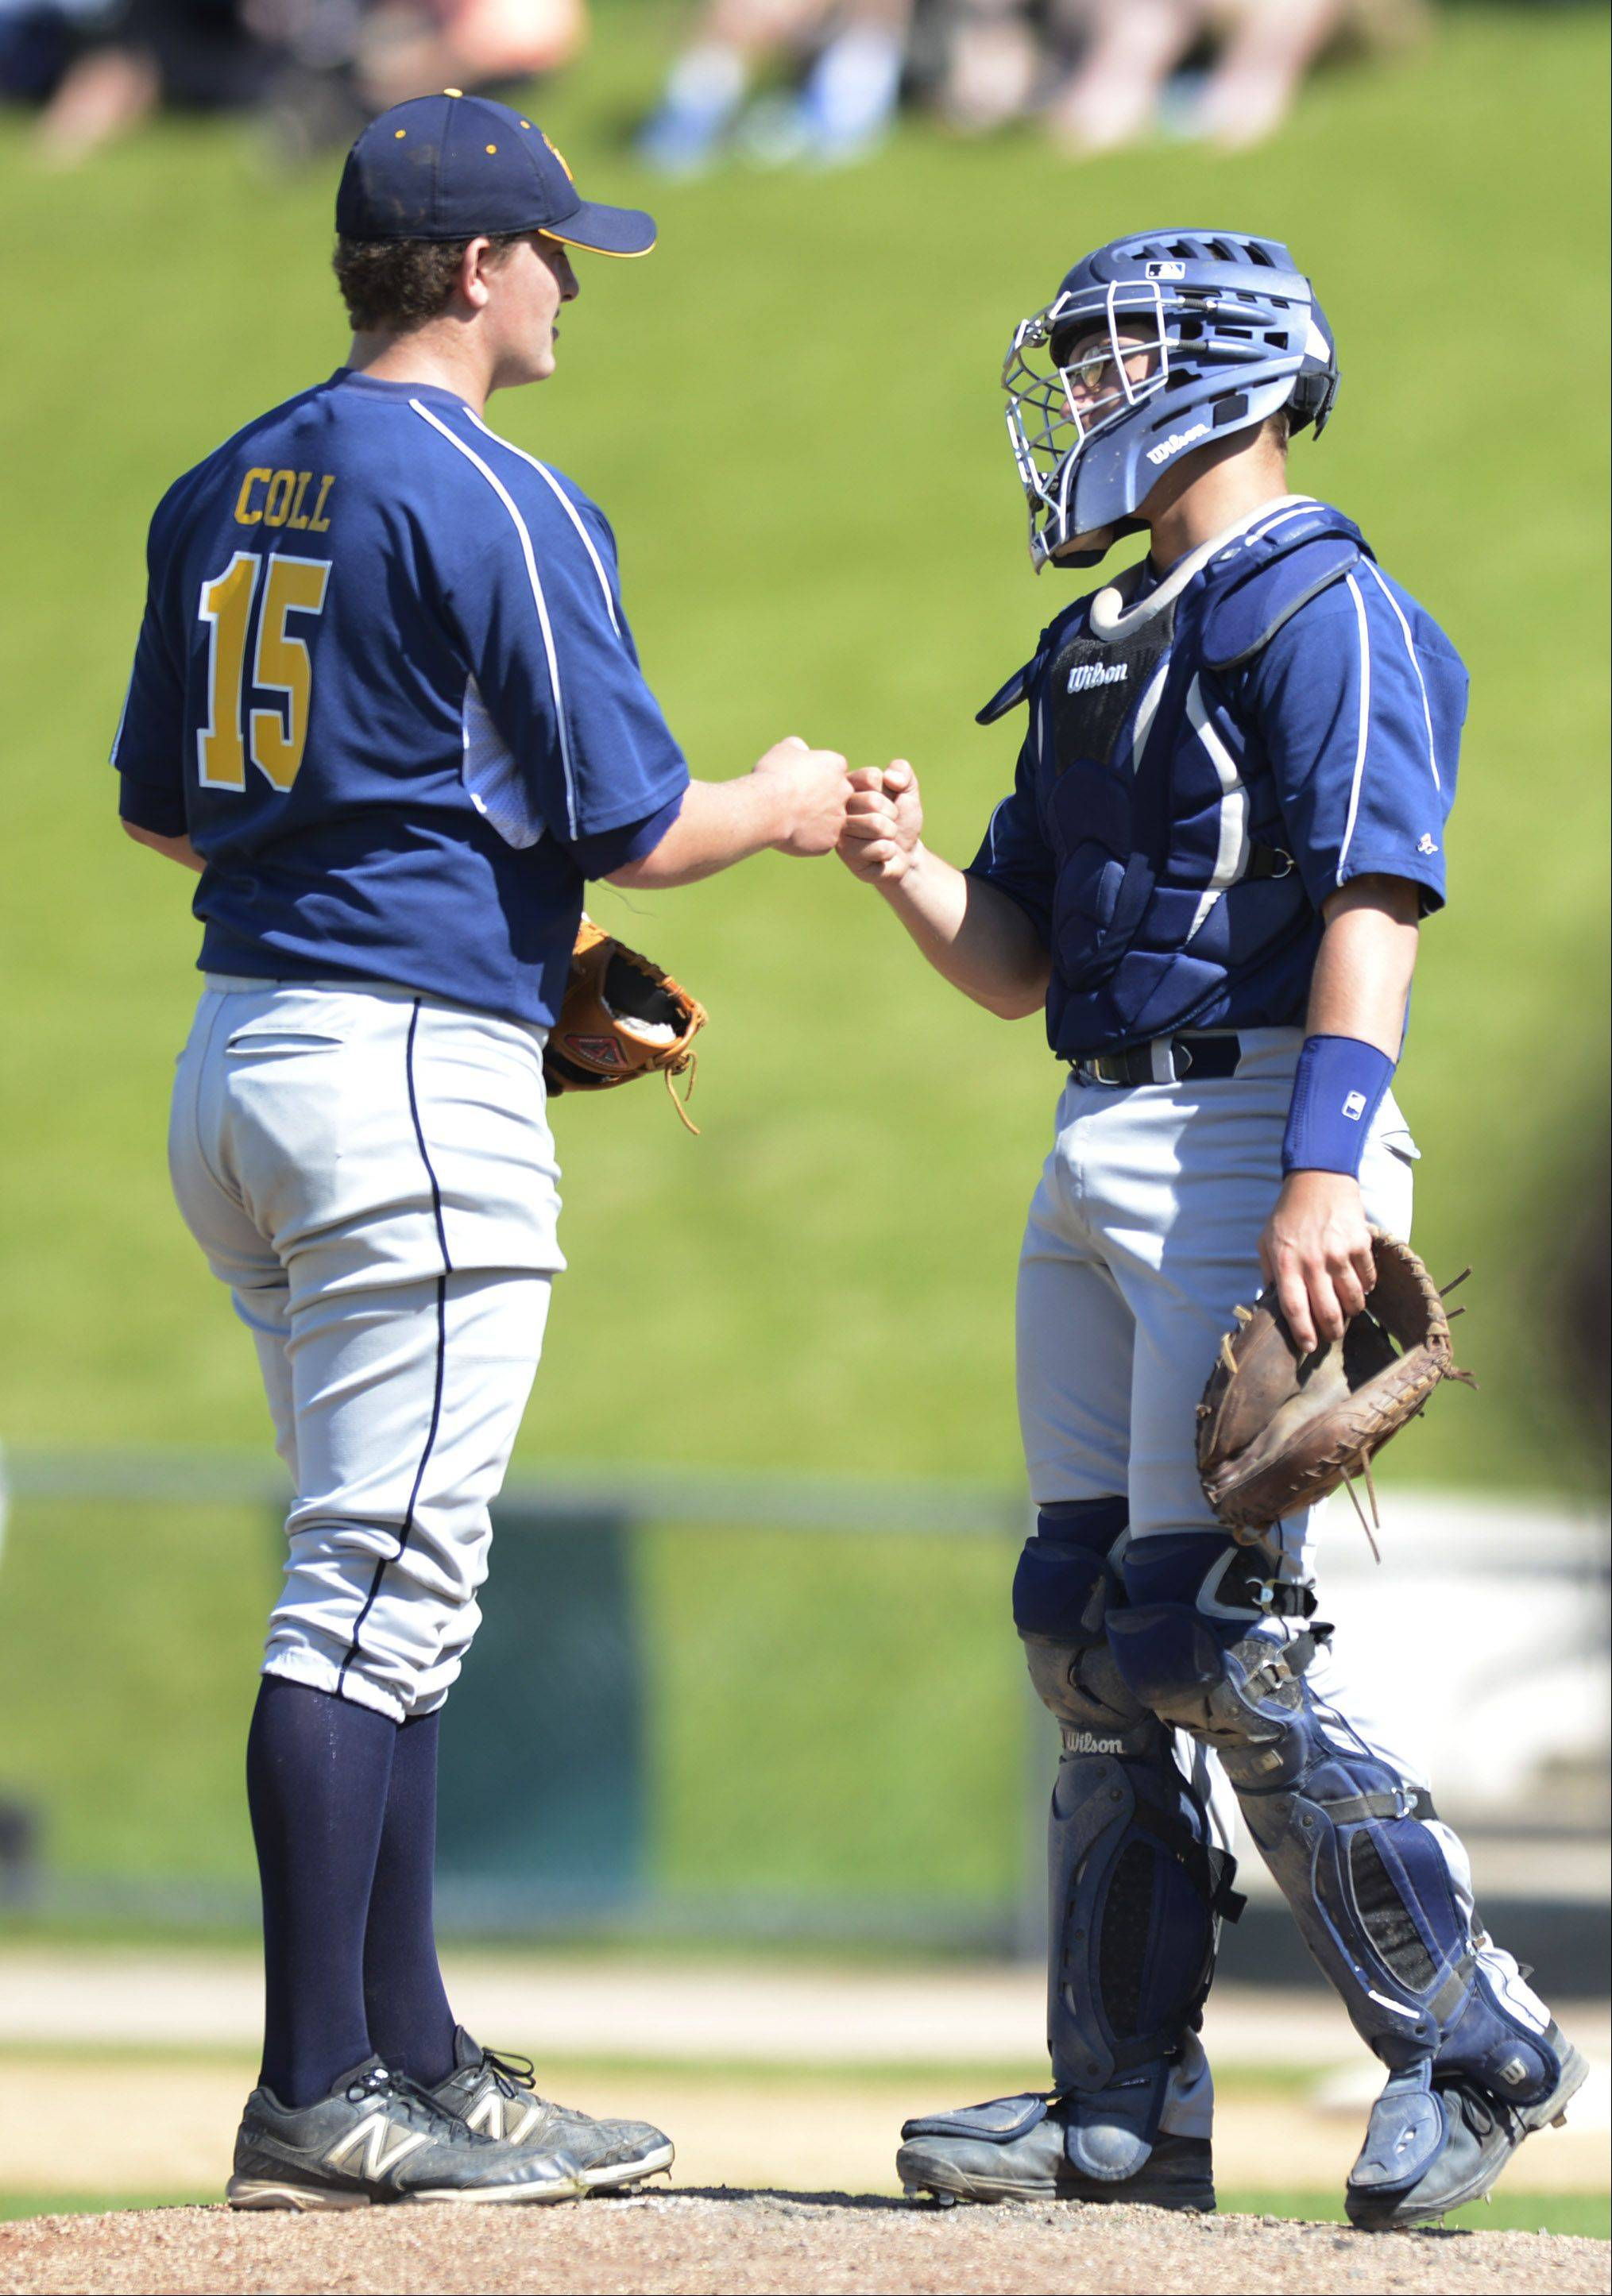 Neuqua Valley pitcher Cody Coll gets a fist bump from catcher Alex Wolanski.